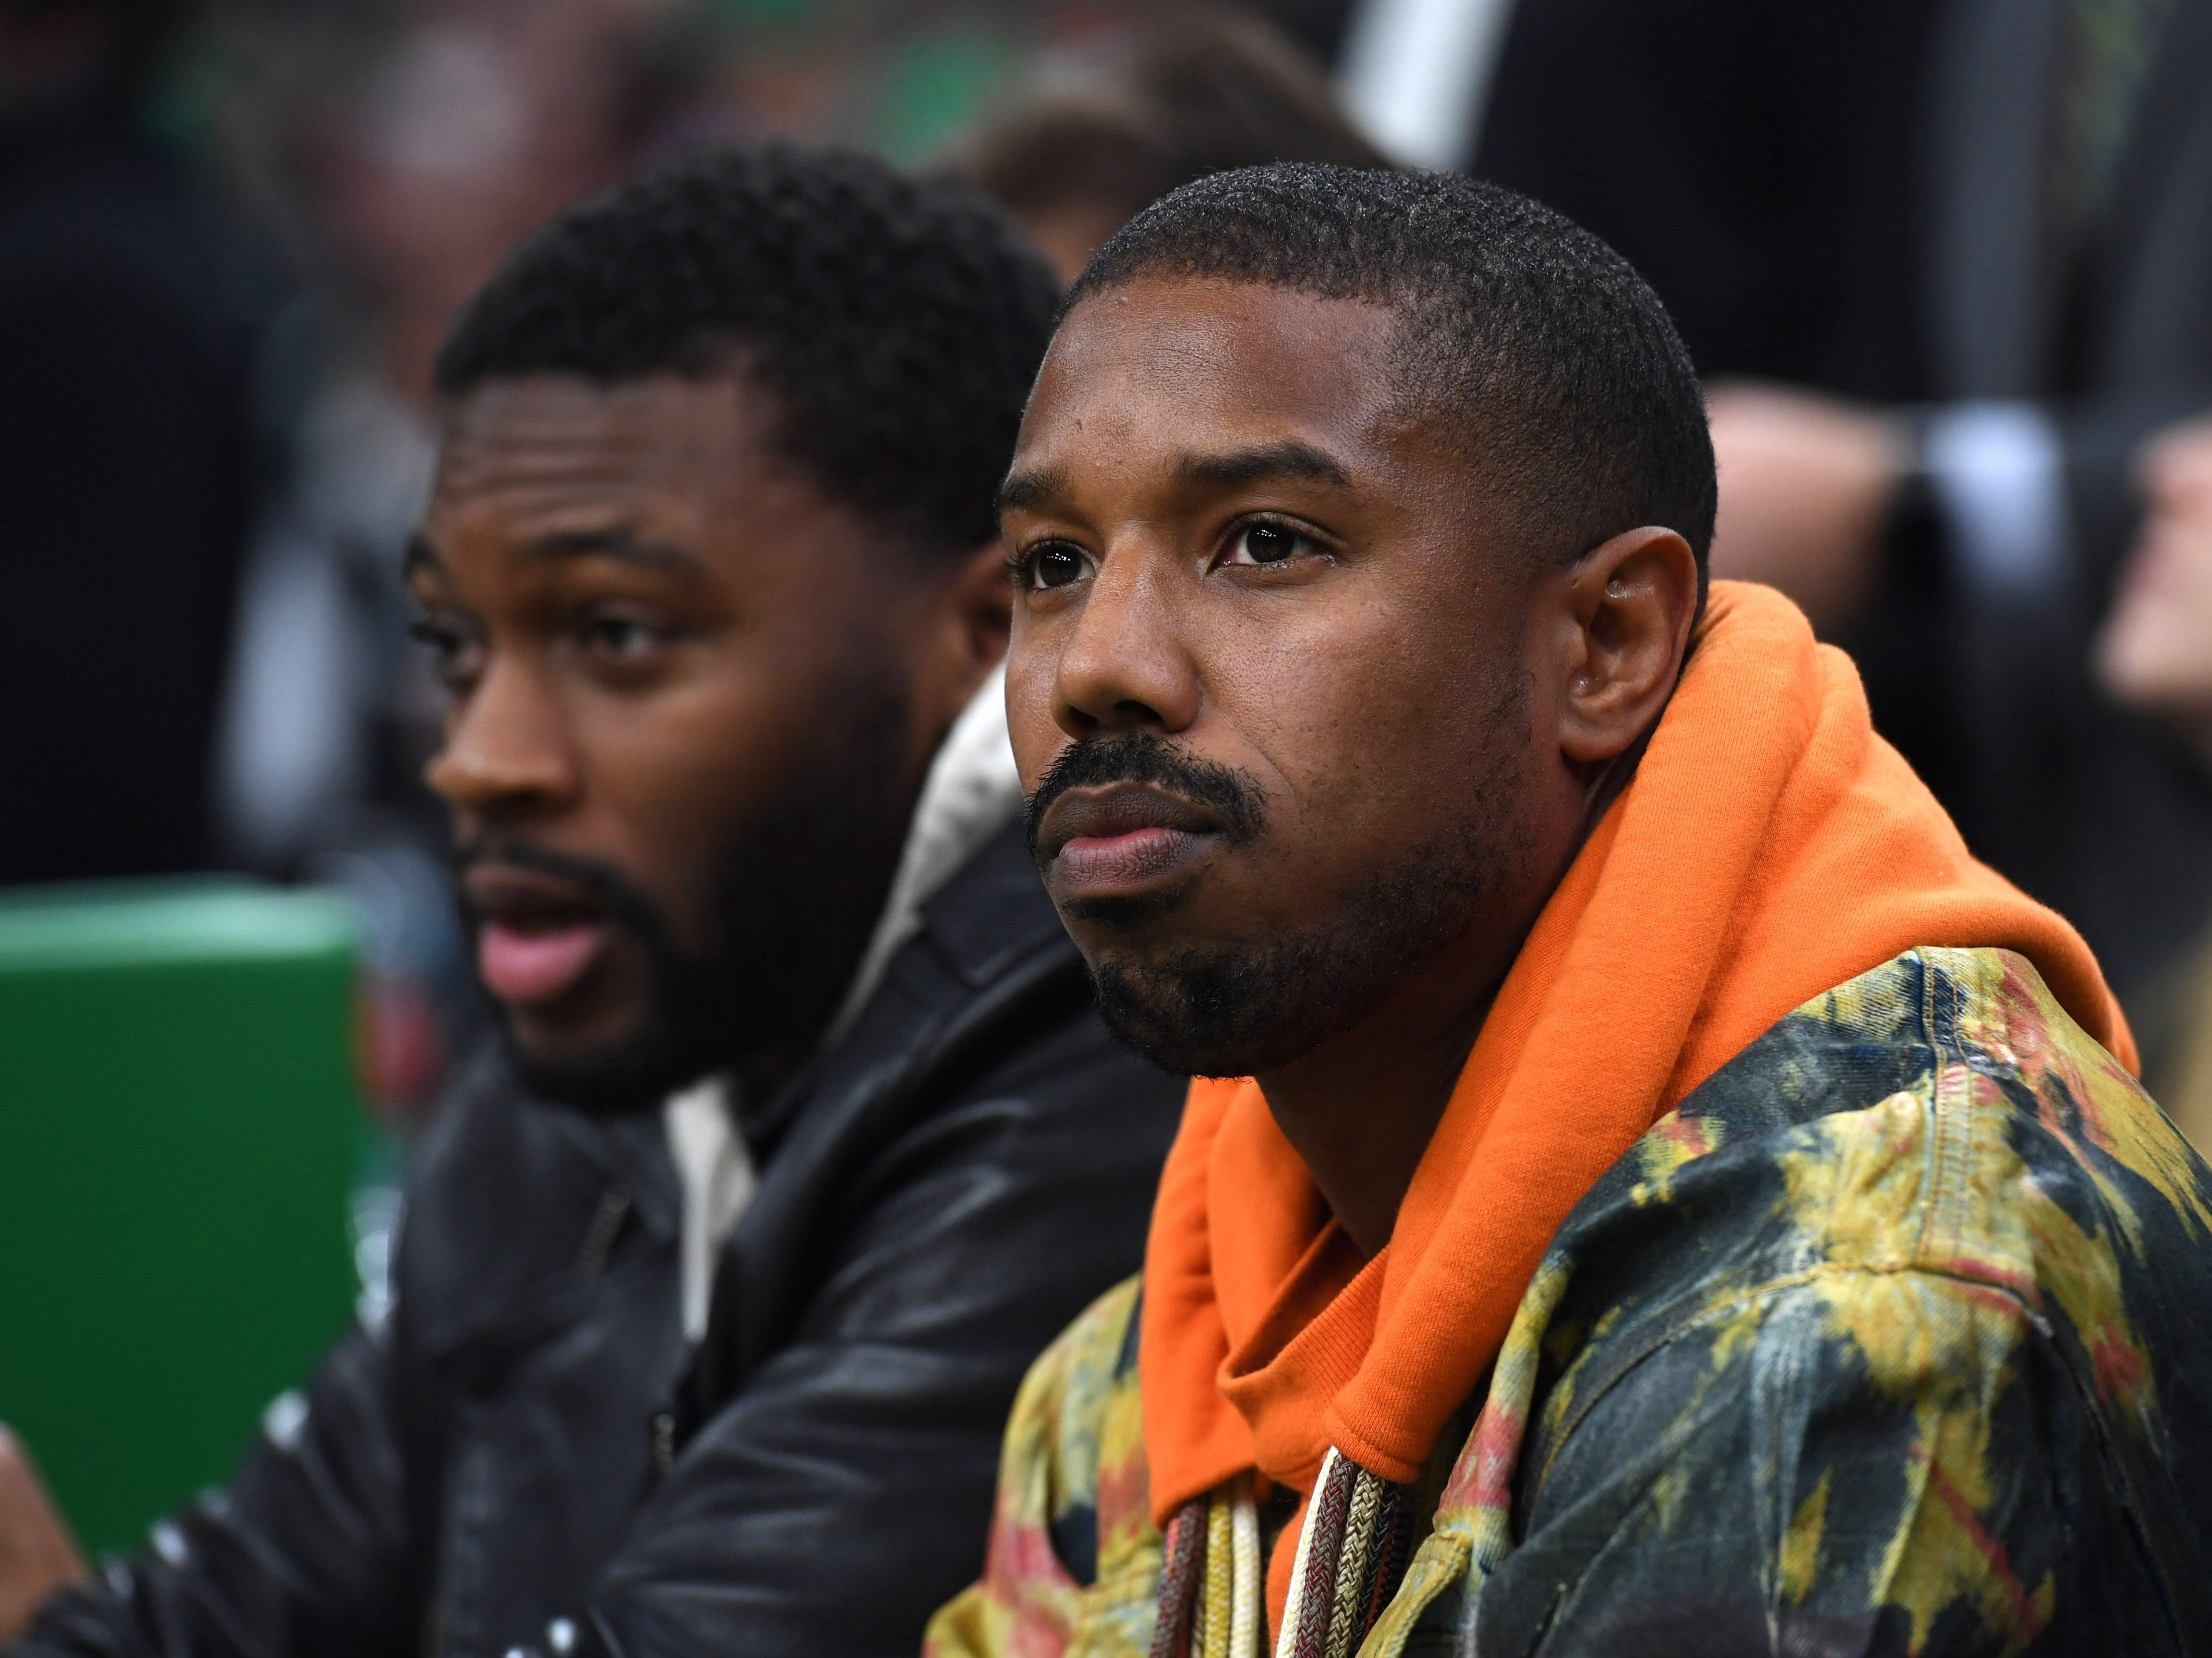 May 3: Actor Michael B. Jordan watches the action during the first half in Game 3 between the Boston Celtics and Milwaukee Bucks.